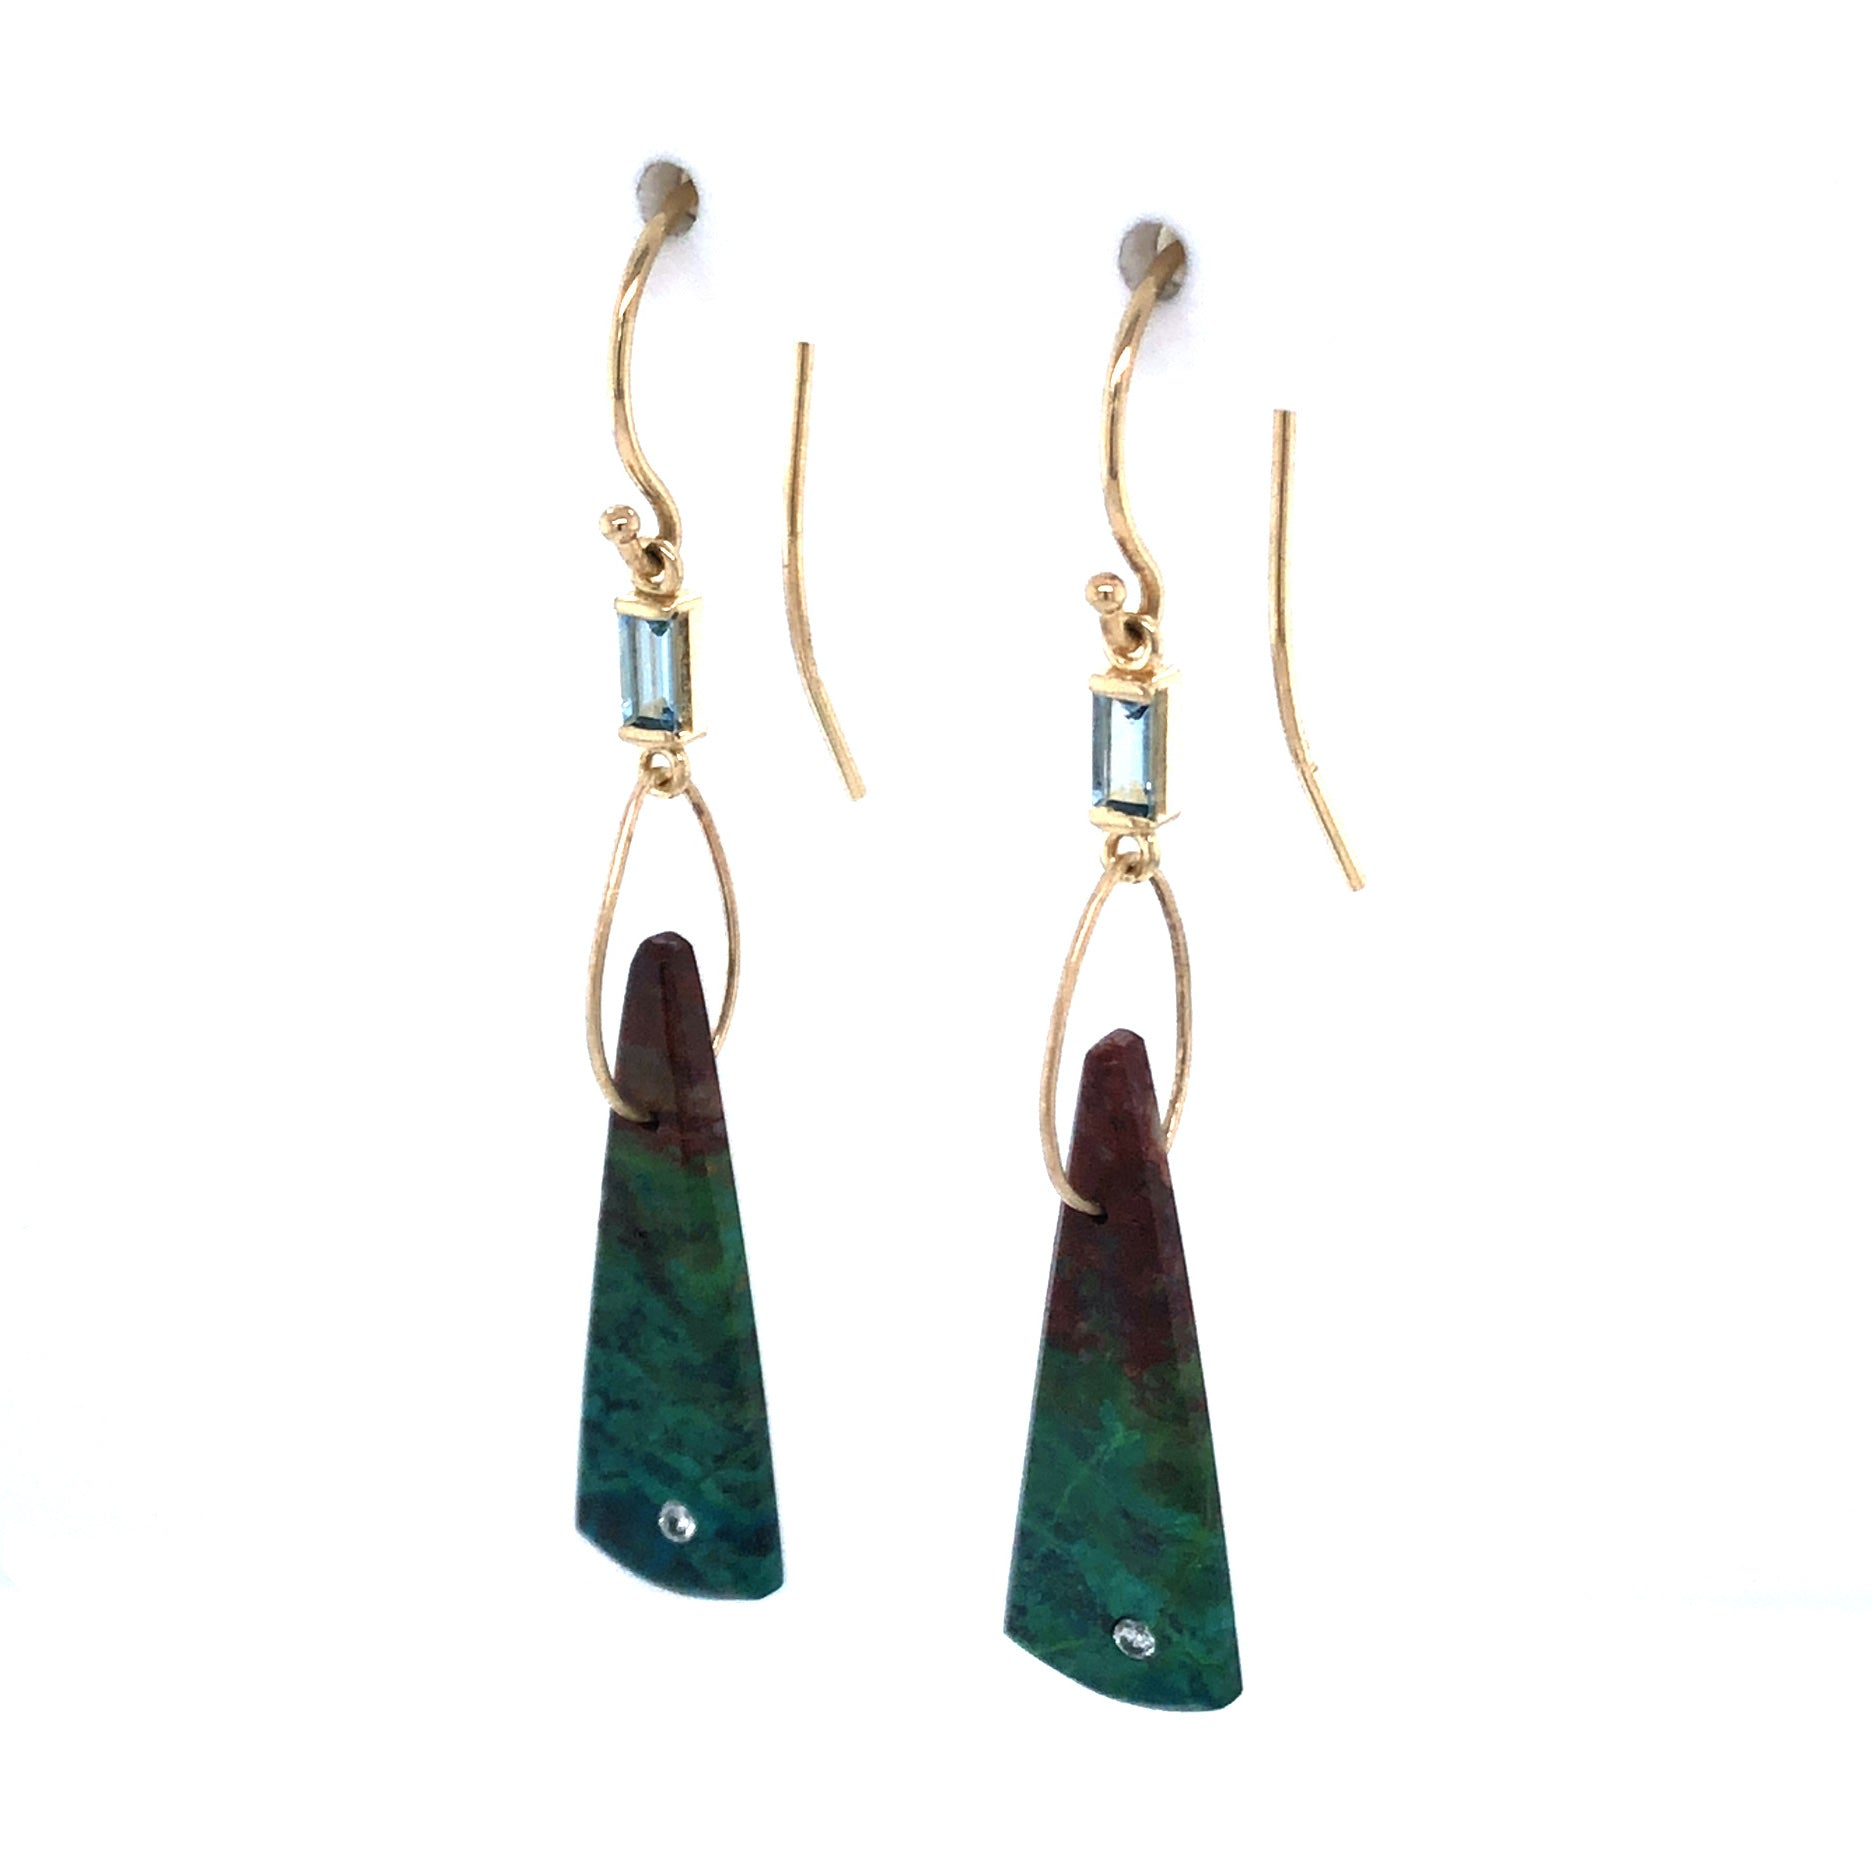 Parrot Wing, Aquamarine, and Diamond Earrings, Handmade in 14k Gold